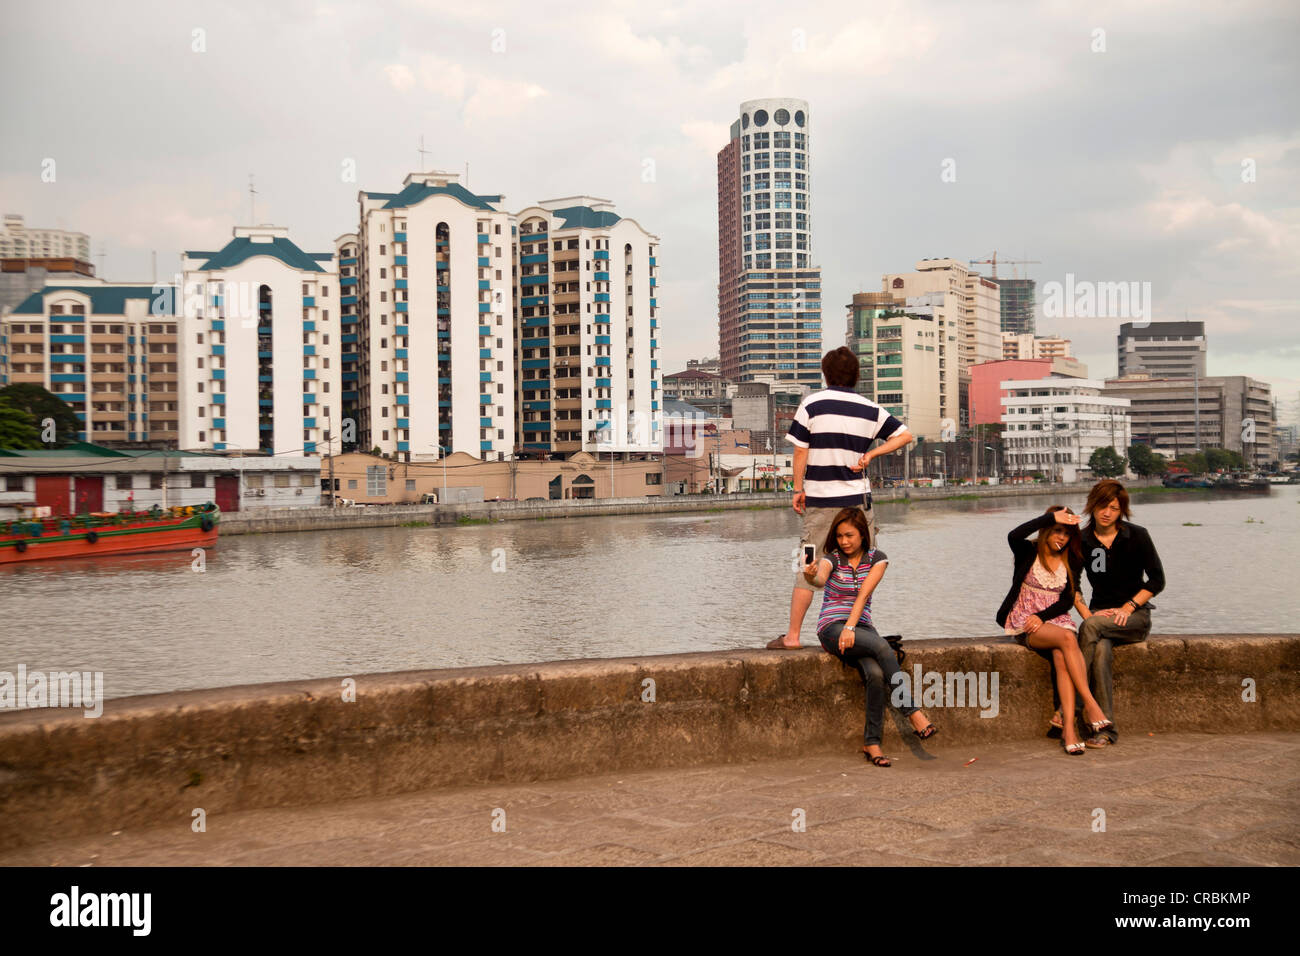 Teenagers at Fort Santiago on the Pasig river, Manila, Philippines, Asia - Stock Image